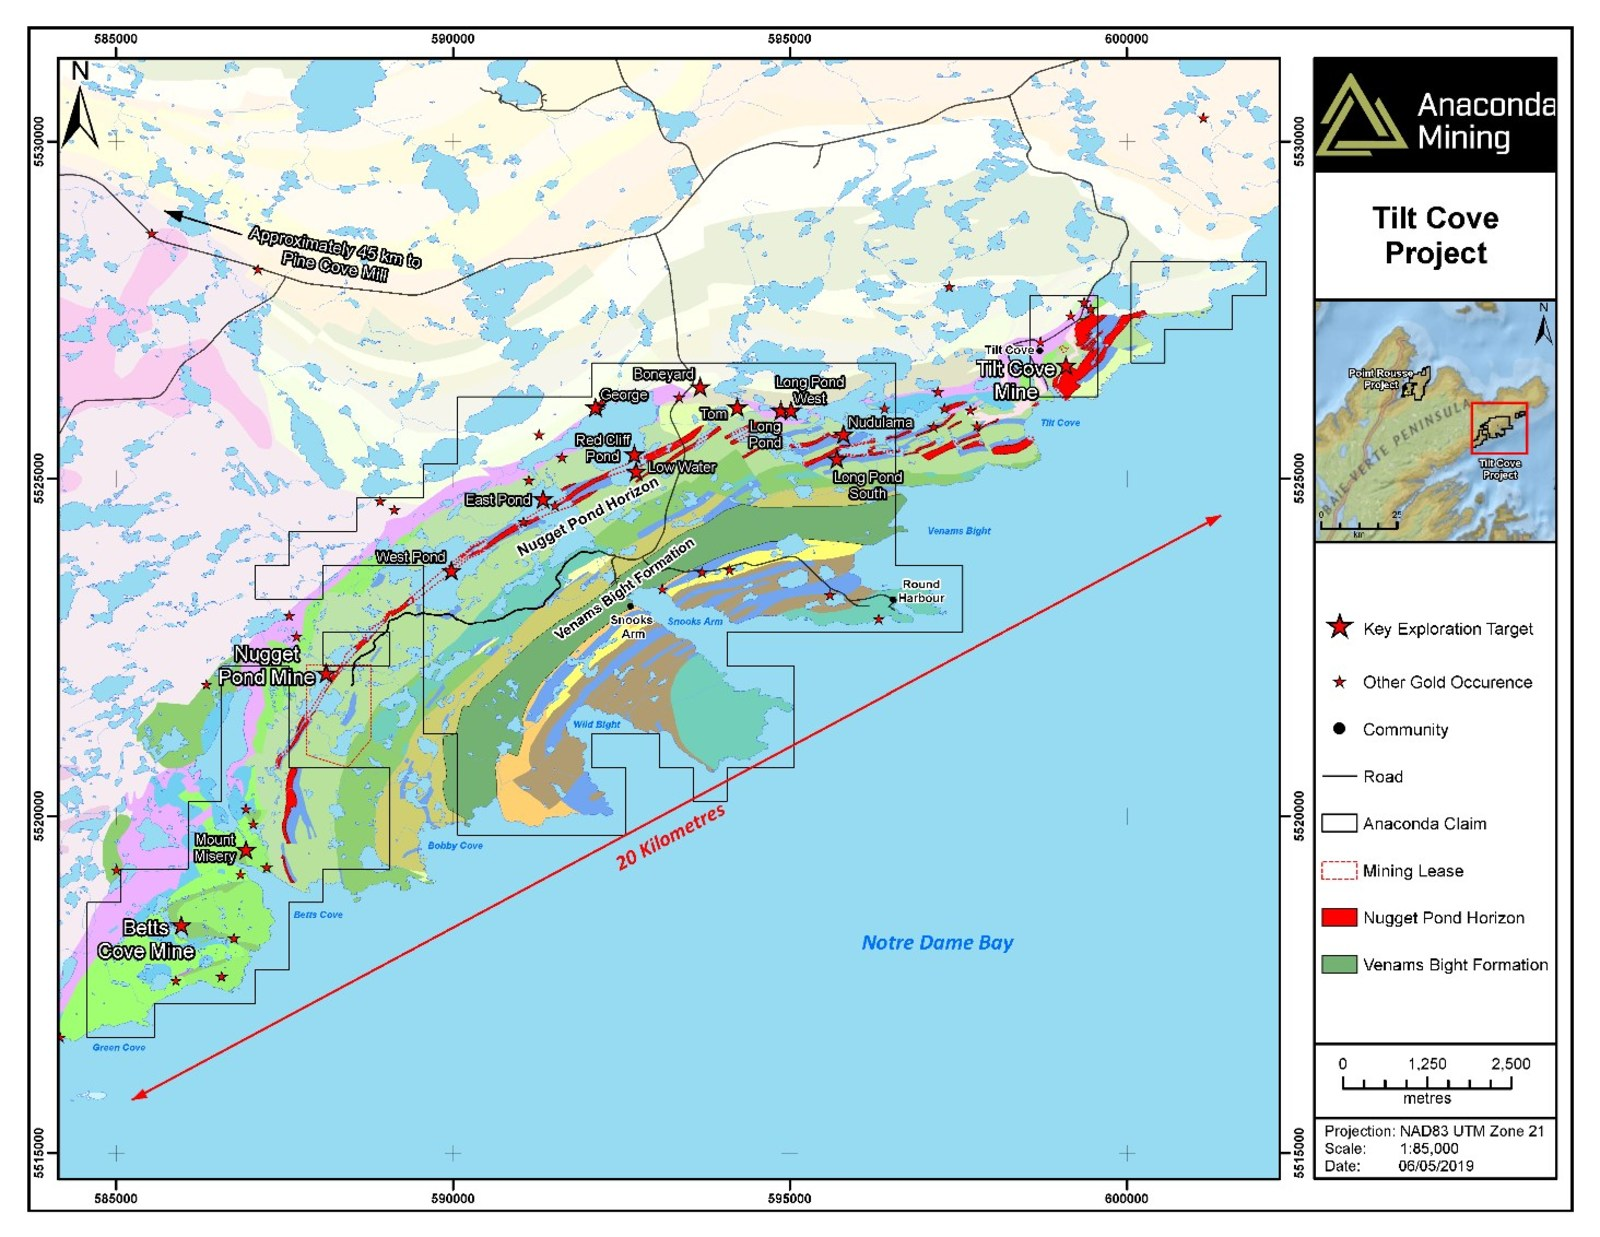 Exhibit A. A geological map of the Tilt Cove Project in the Baie Verte Mining District of Newfoundland. The map highlights the Nugget Pond Horizon and the Venams Bight Formation as key host rocks to gold deposits at both the Tilt Cove and Point Rousse Projects as well as key exploration targets.